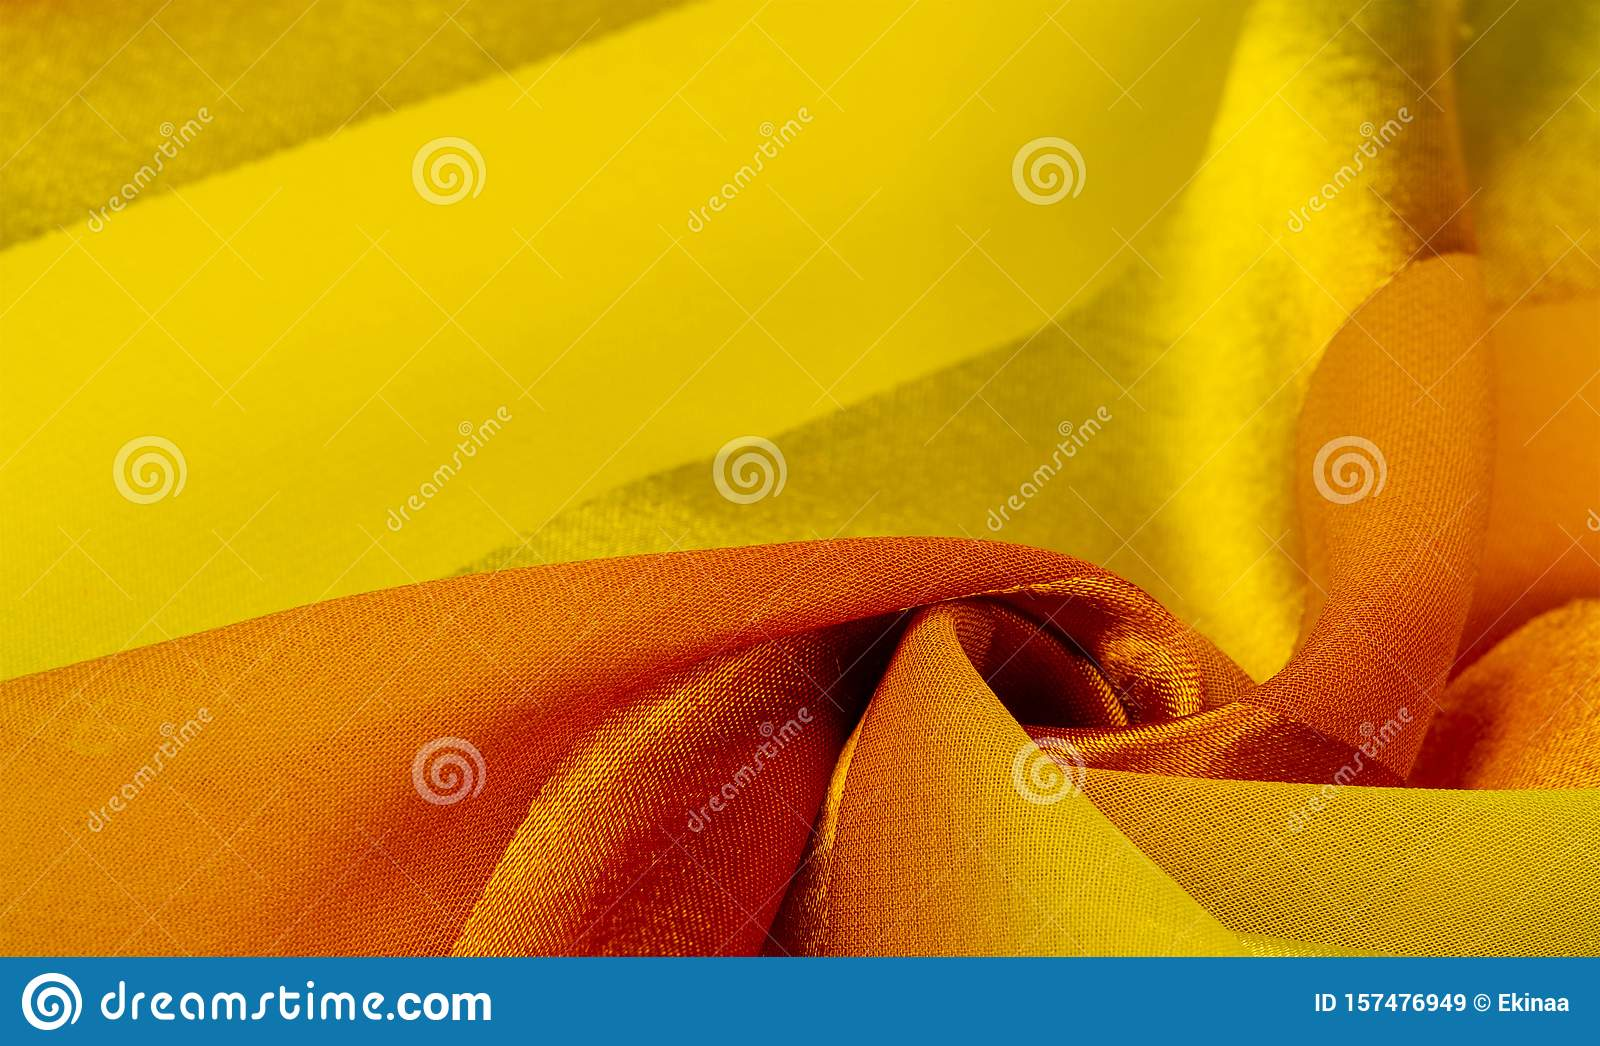 Texture, background, yellow silk striped fabric with a metallic sheen. If you have a bad mood, this fabric will lift it to